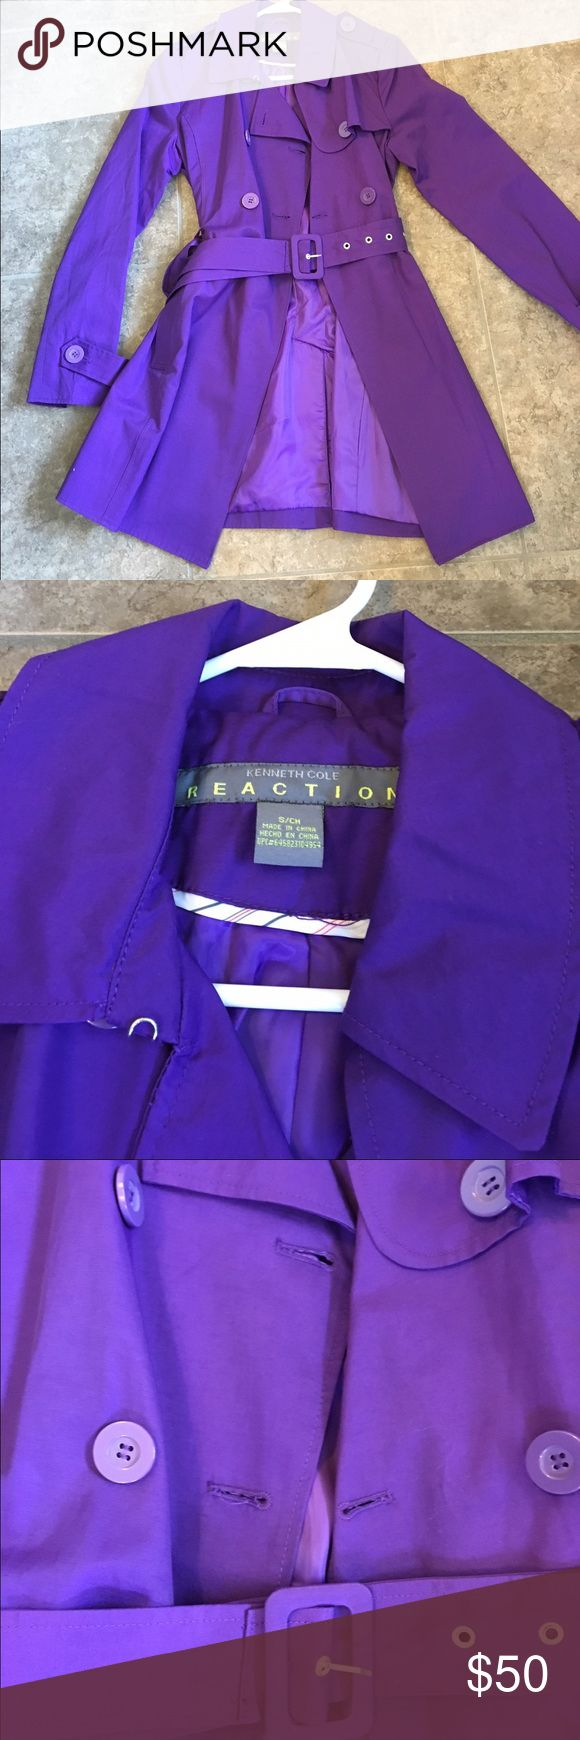 Kenneth Cole reaction purple trench coat Like new! Worn once. Excellent condition. Happy to answer questions. Kenneth Cole Reaction Jackets & Coats Trench Coats